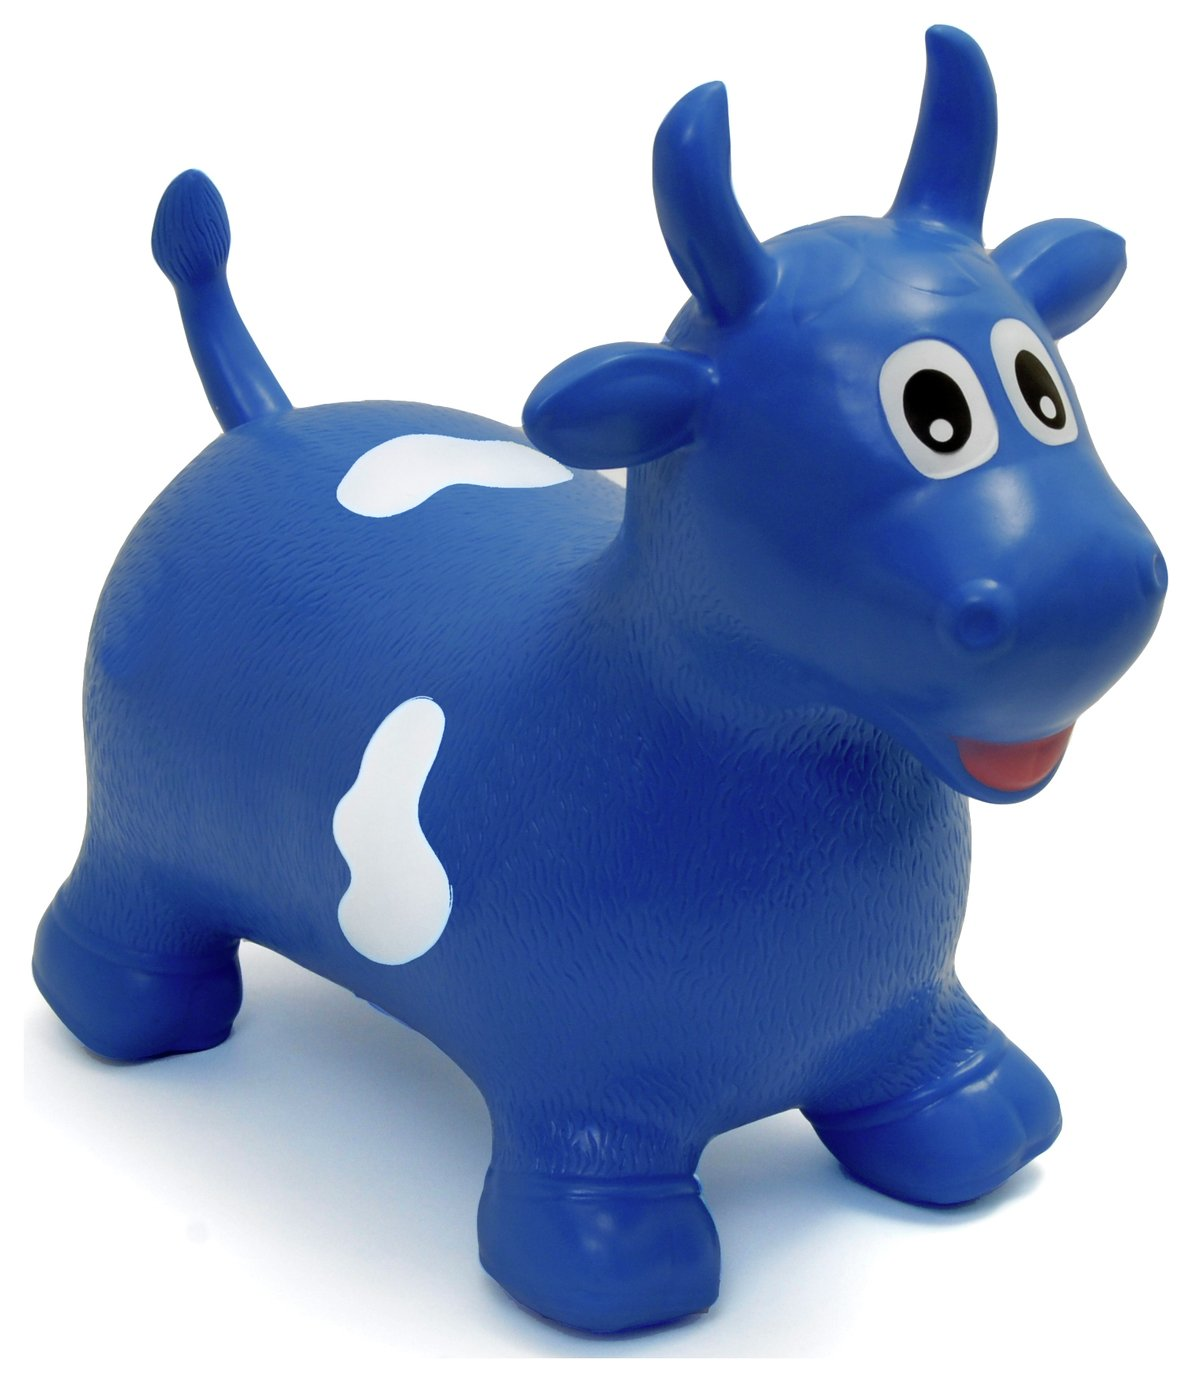 Image of HappyHopperz Inflatable Bouncer Bull - Blue.